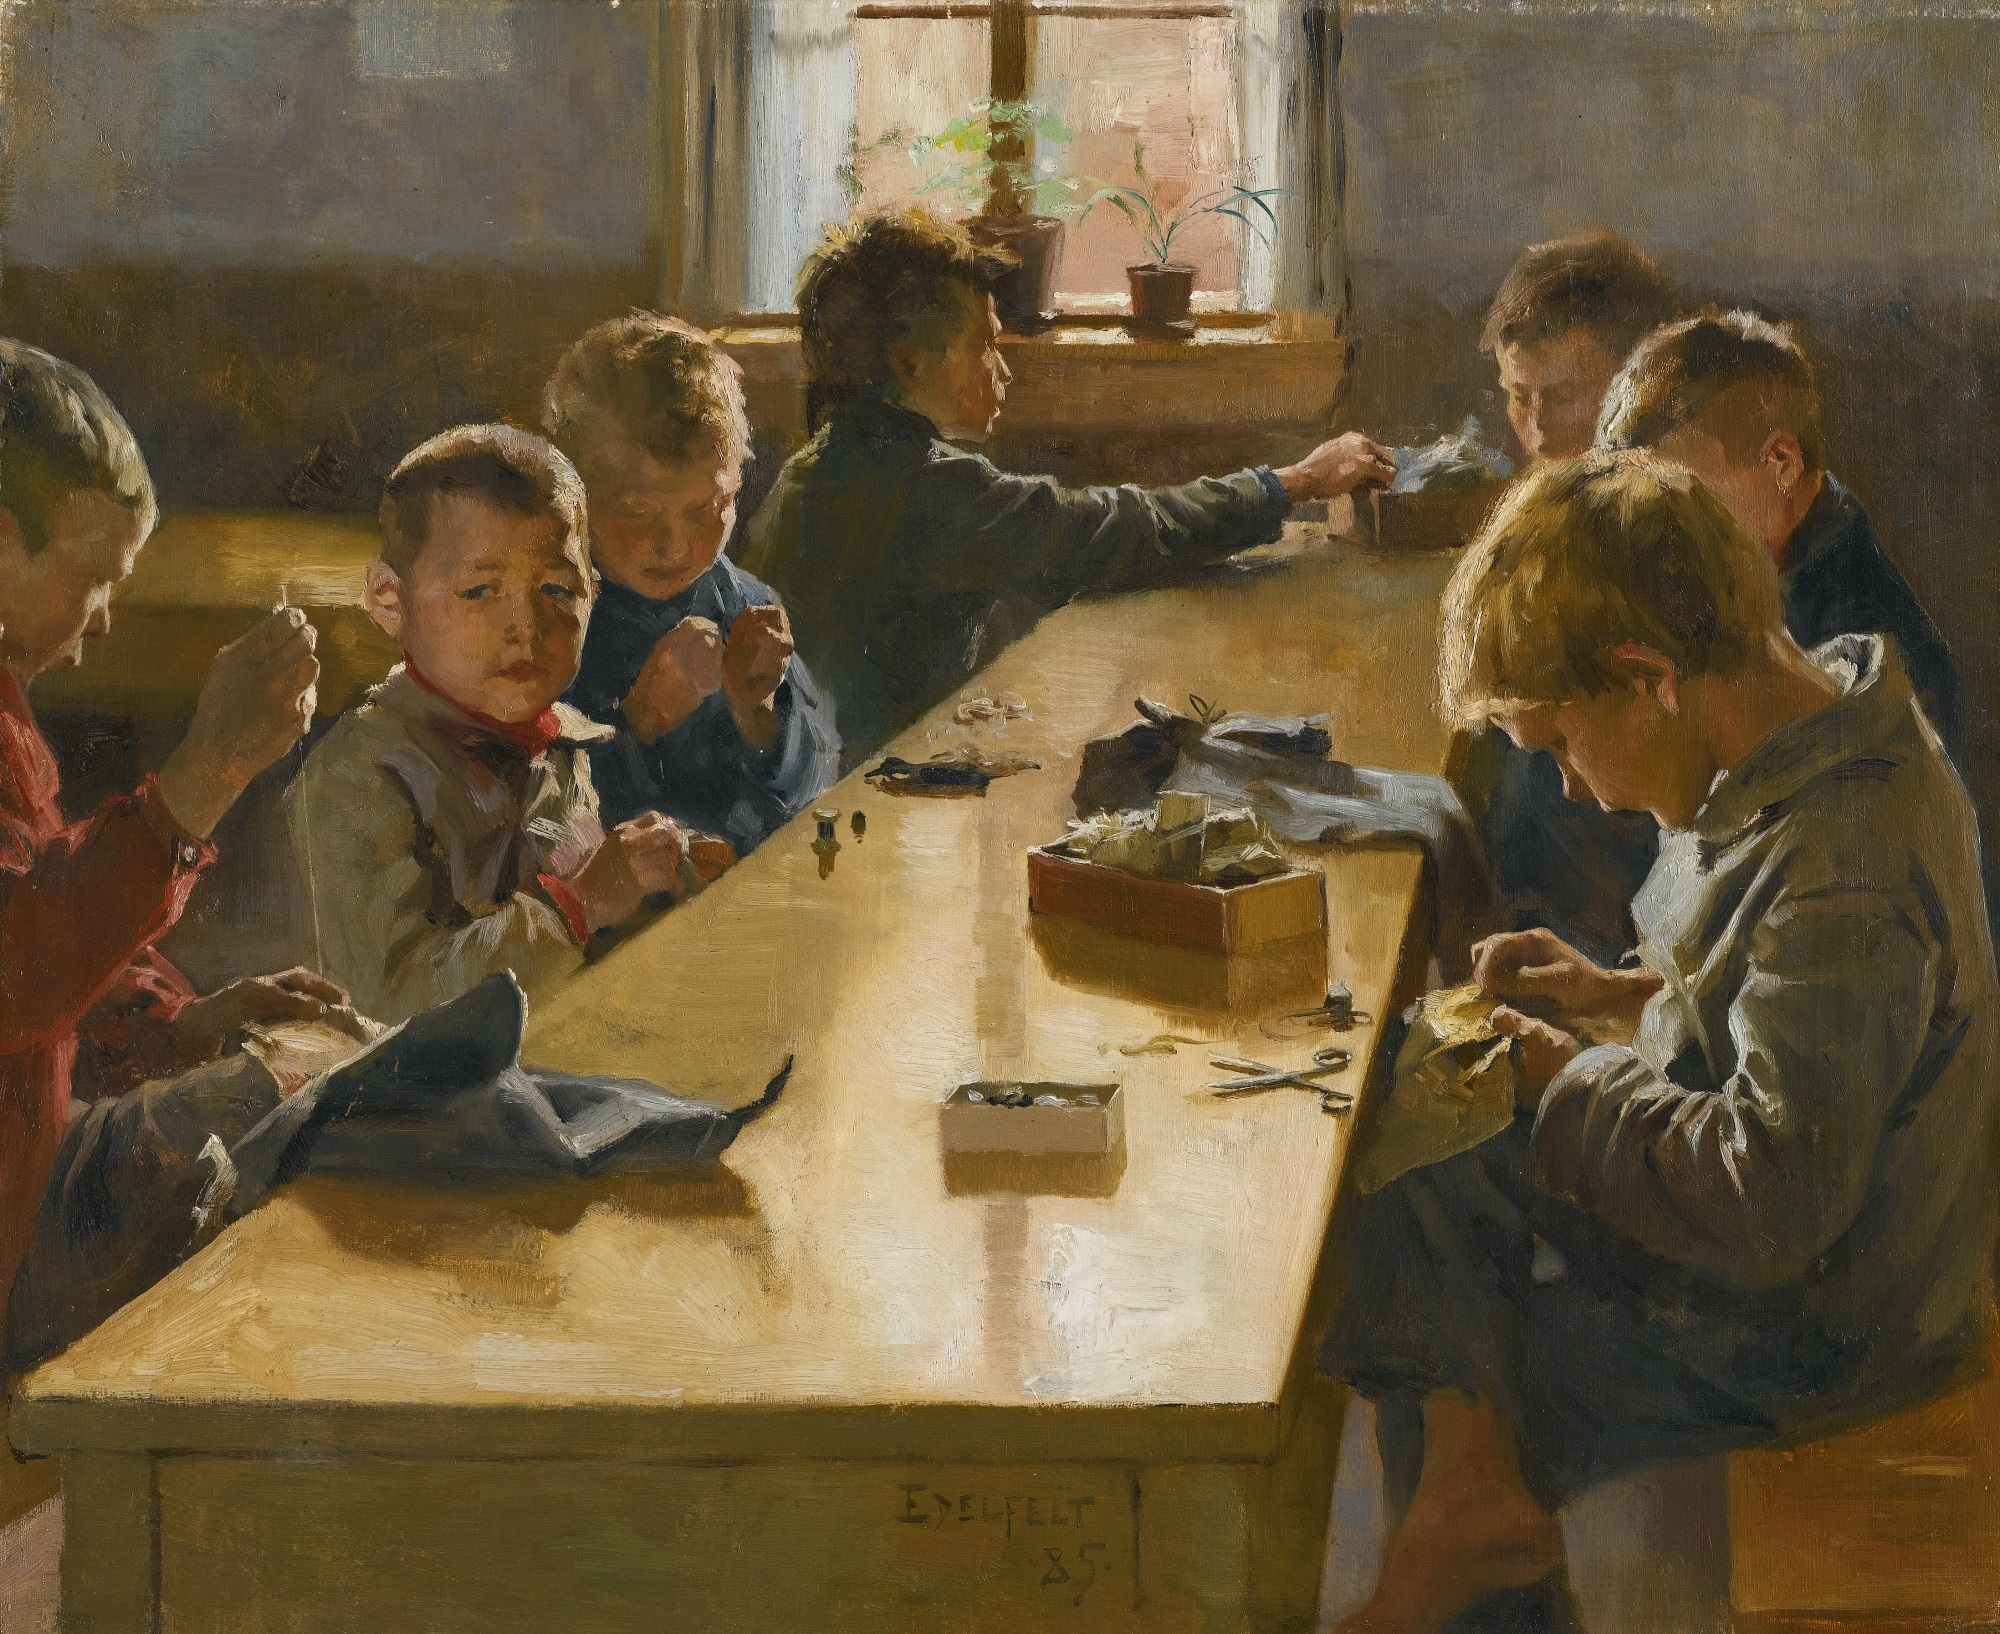 Painting of boys at work